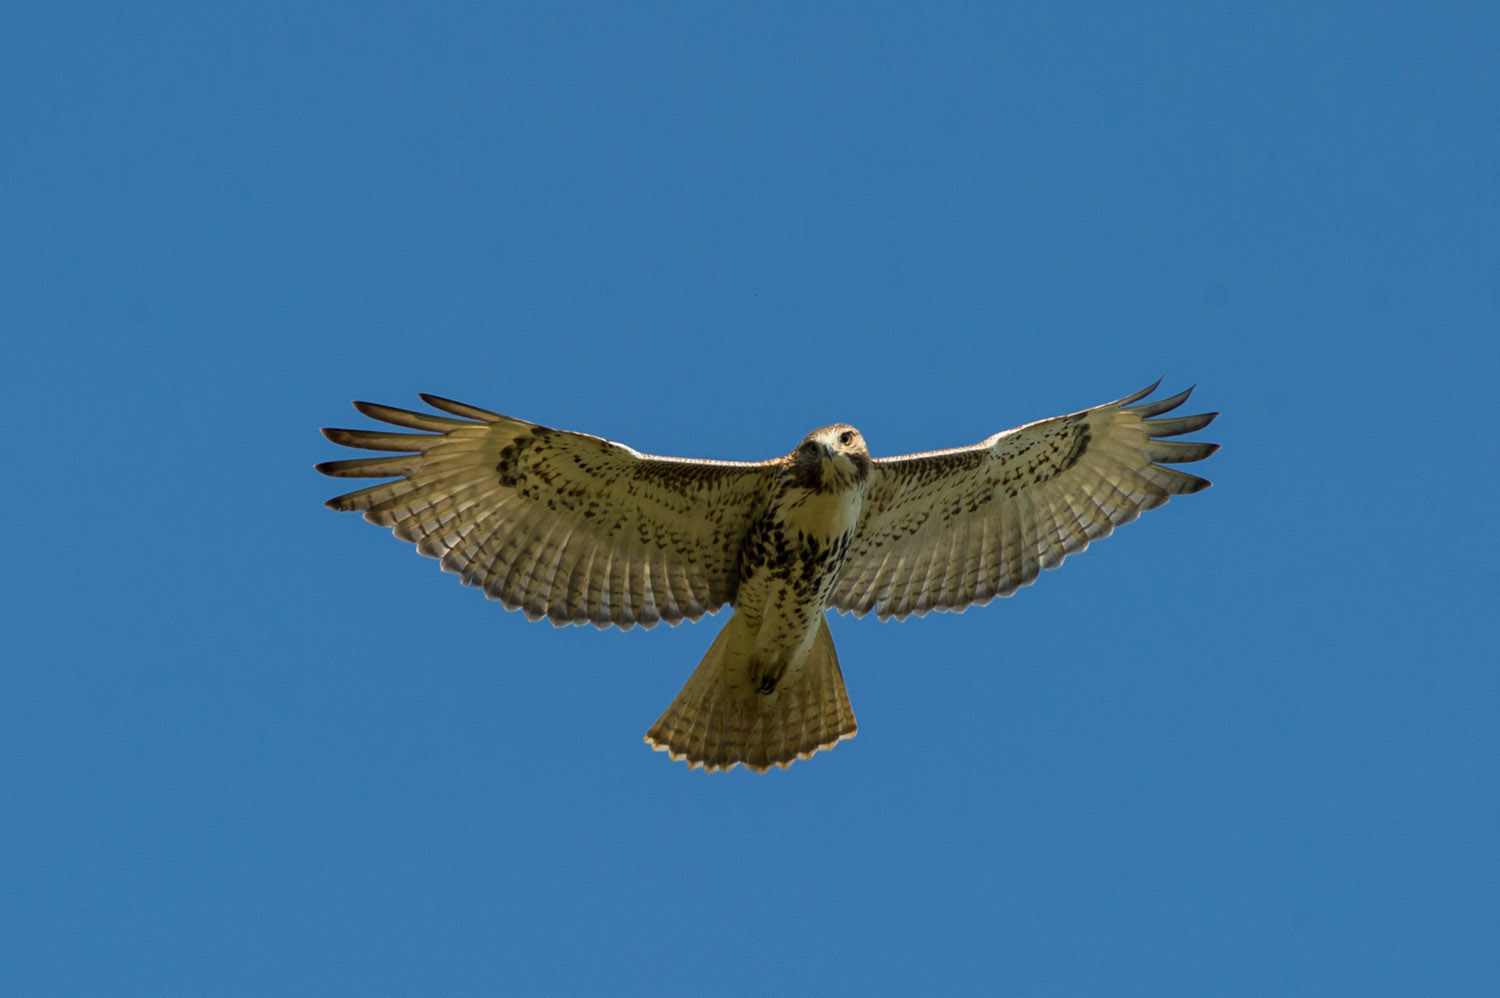 A Red-Tailed Hawk looking down at me as it flies overhead  .